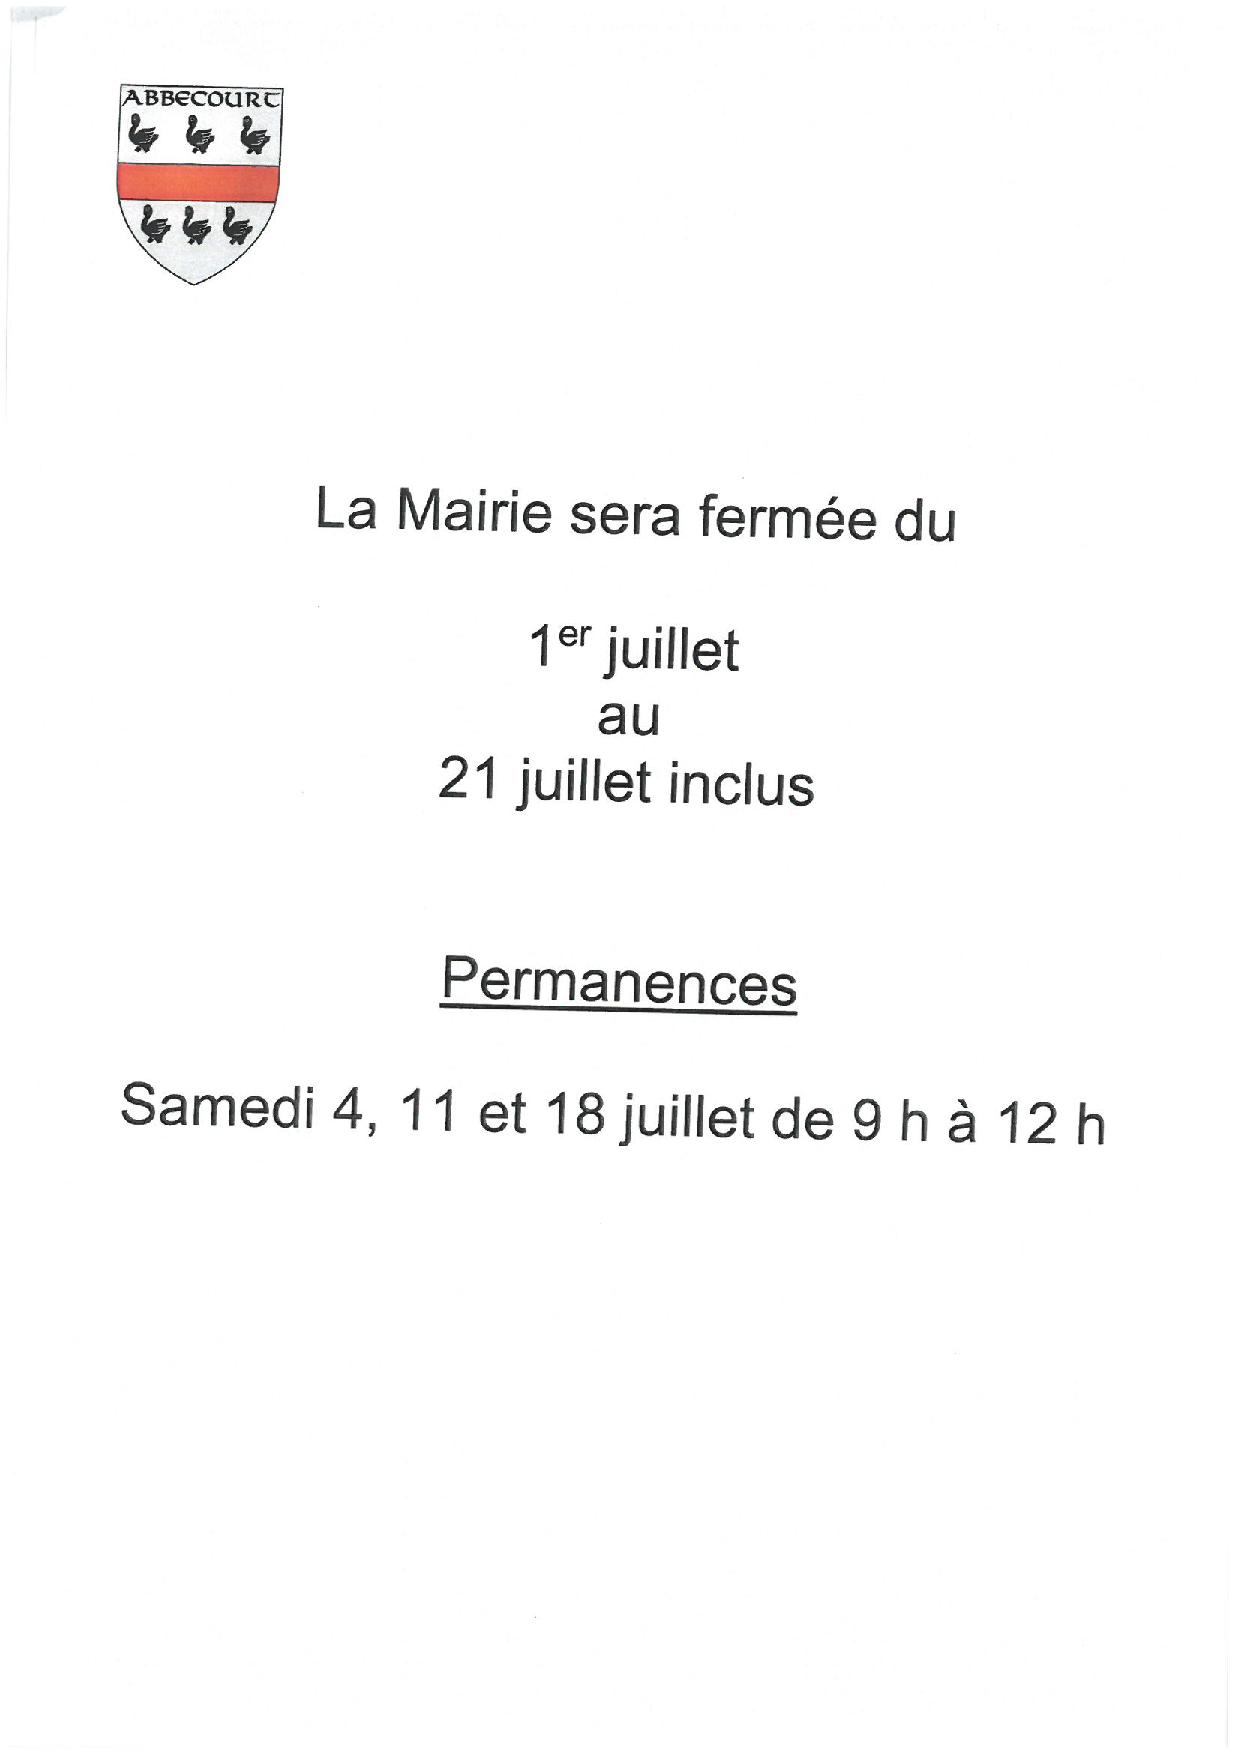 FERMETURE MAIRIE.png